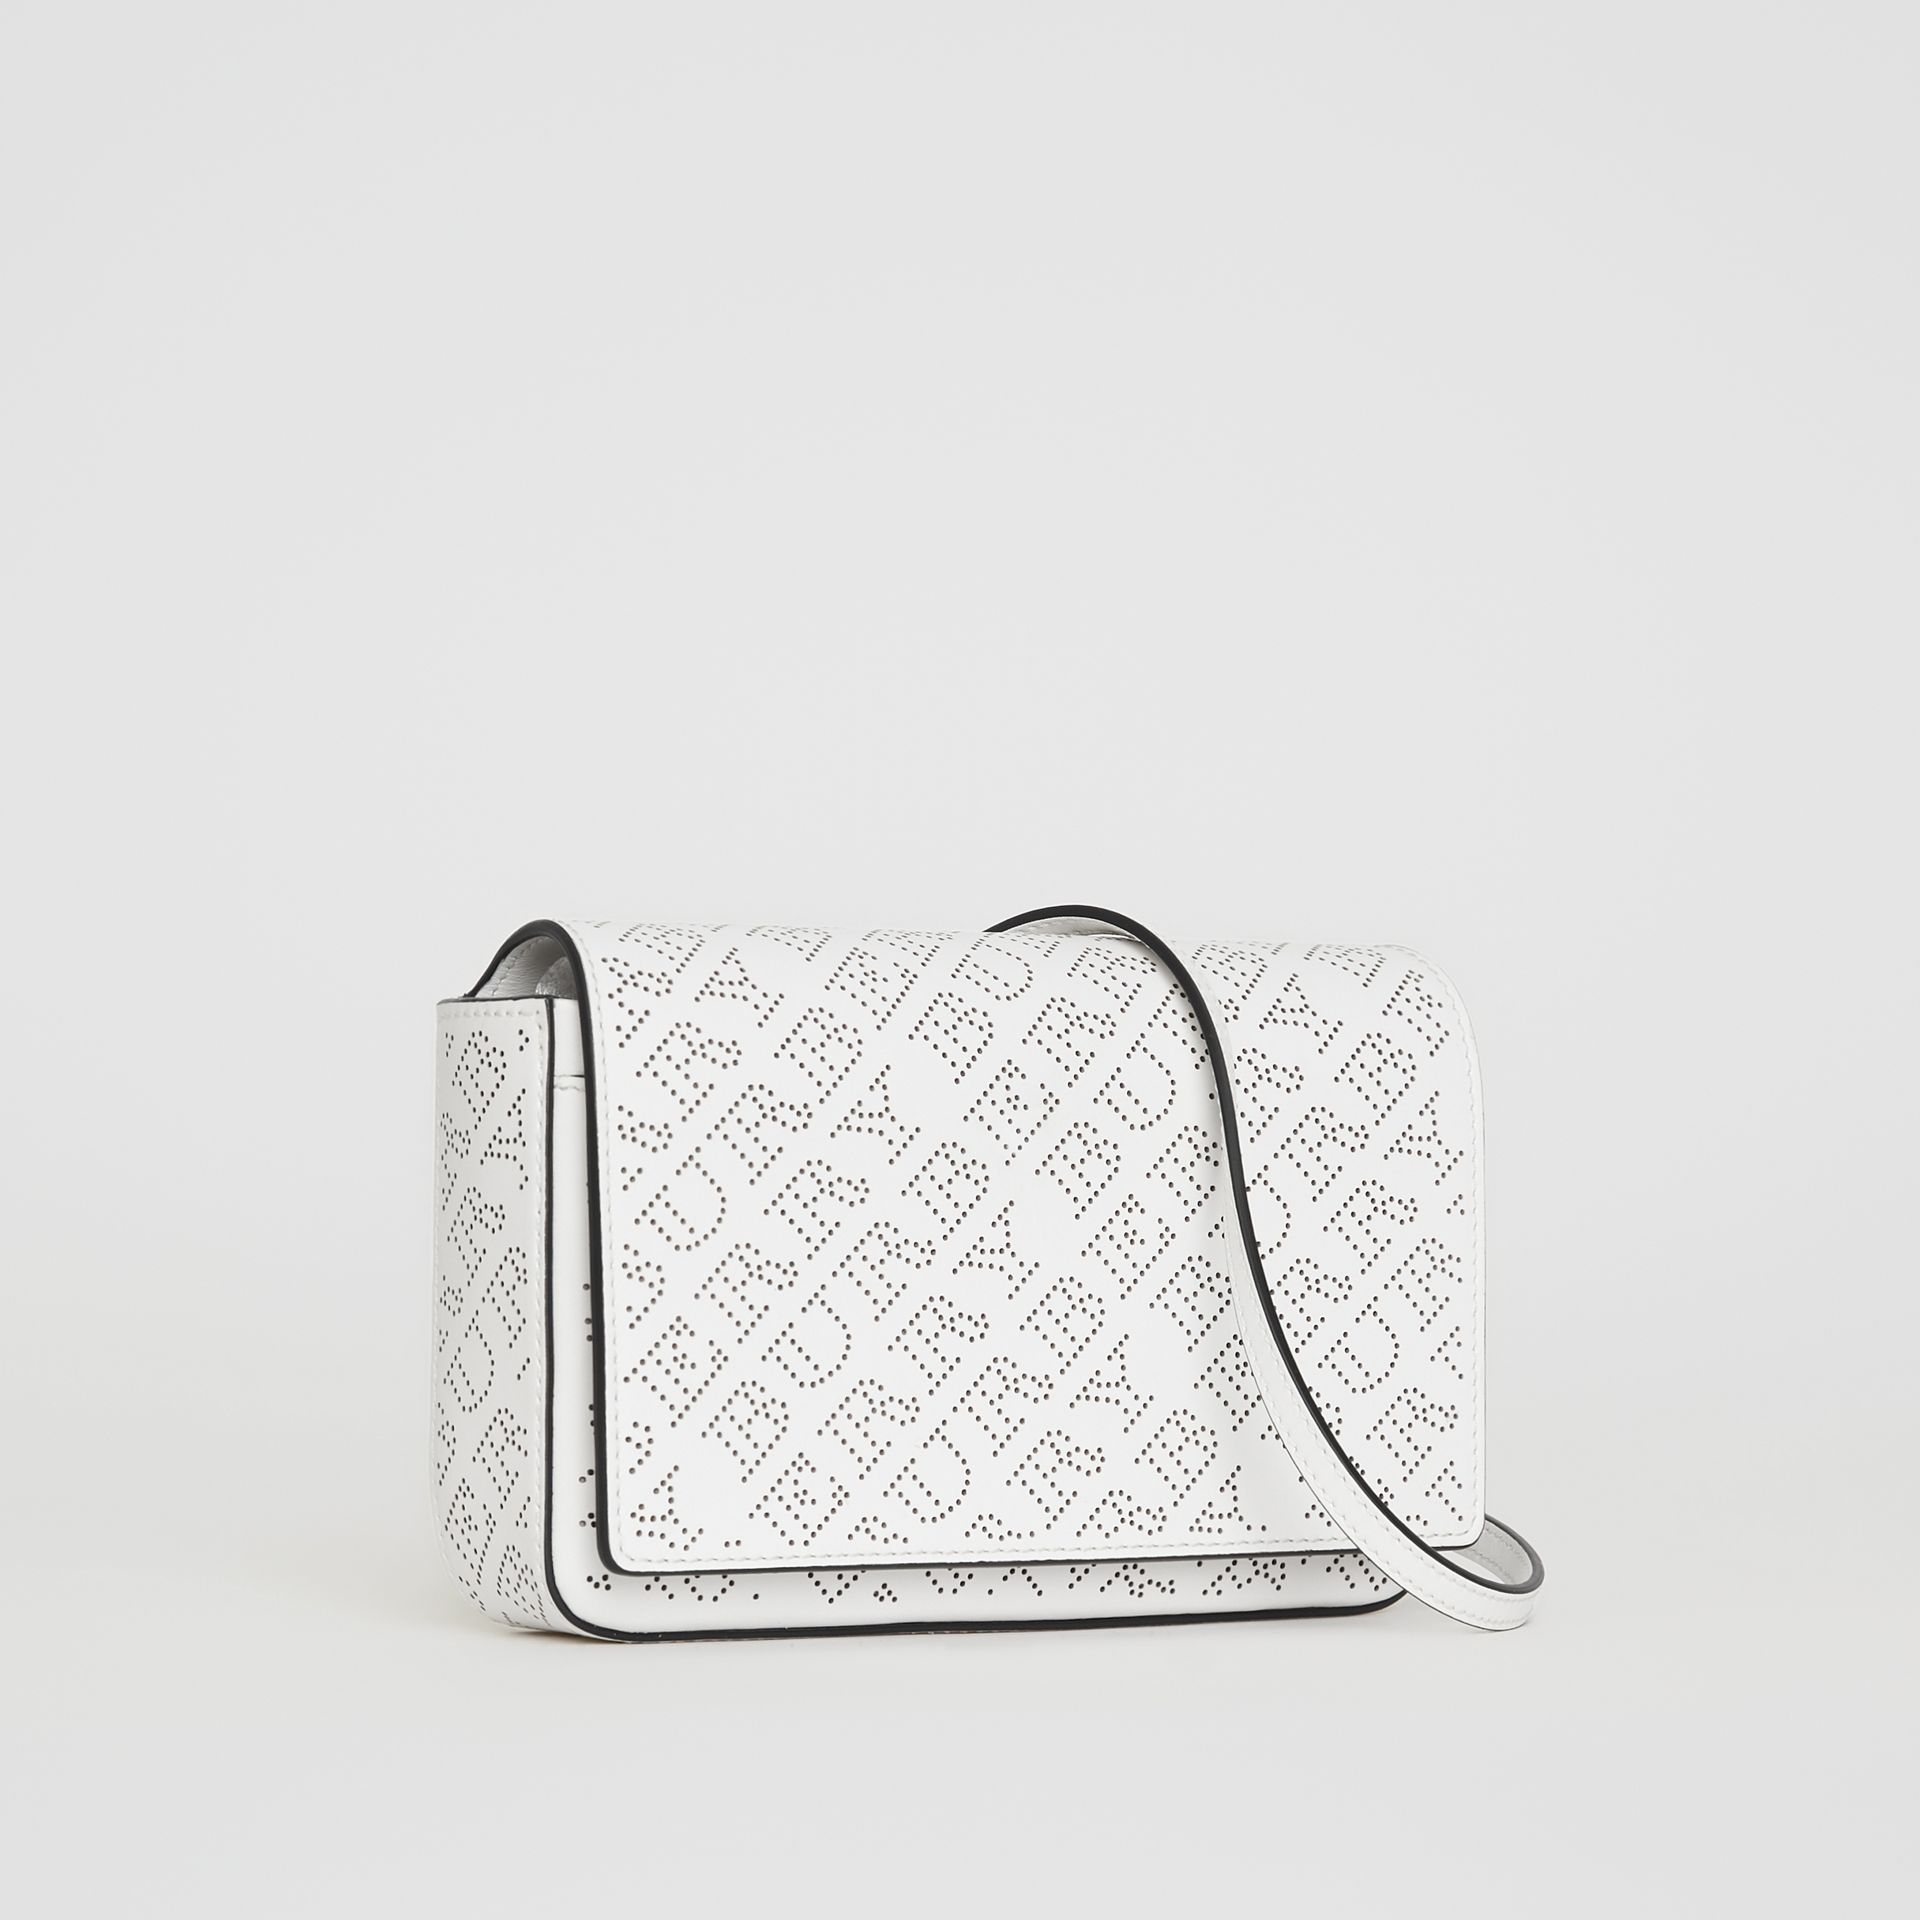 Perforated Logo Leather Wallet with Detachable Strap in White - Women | Burberry United Kingdom - gallery image 4